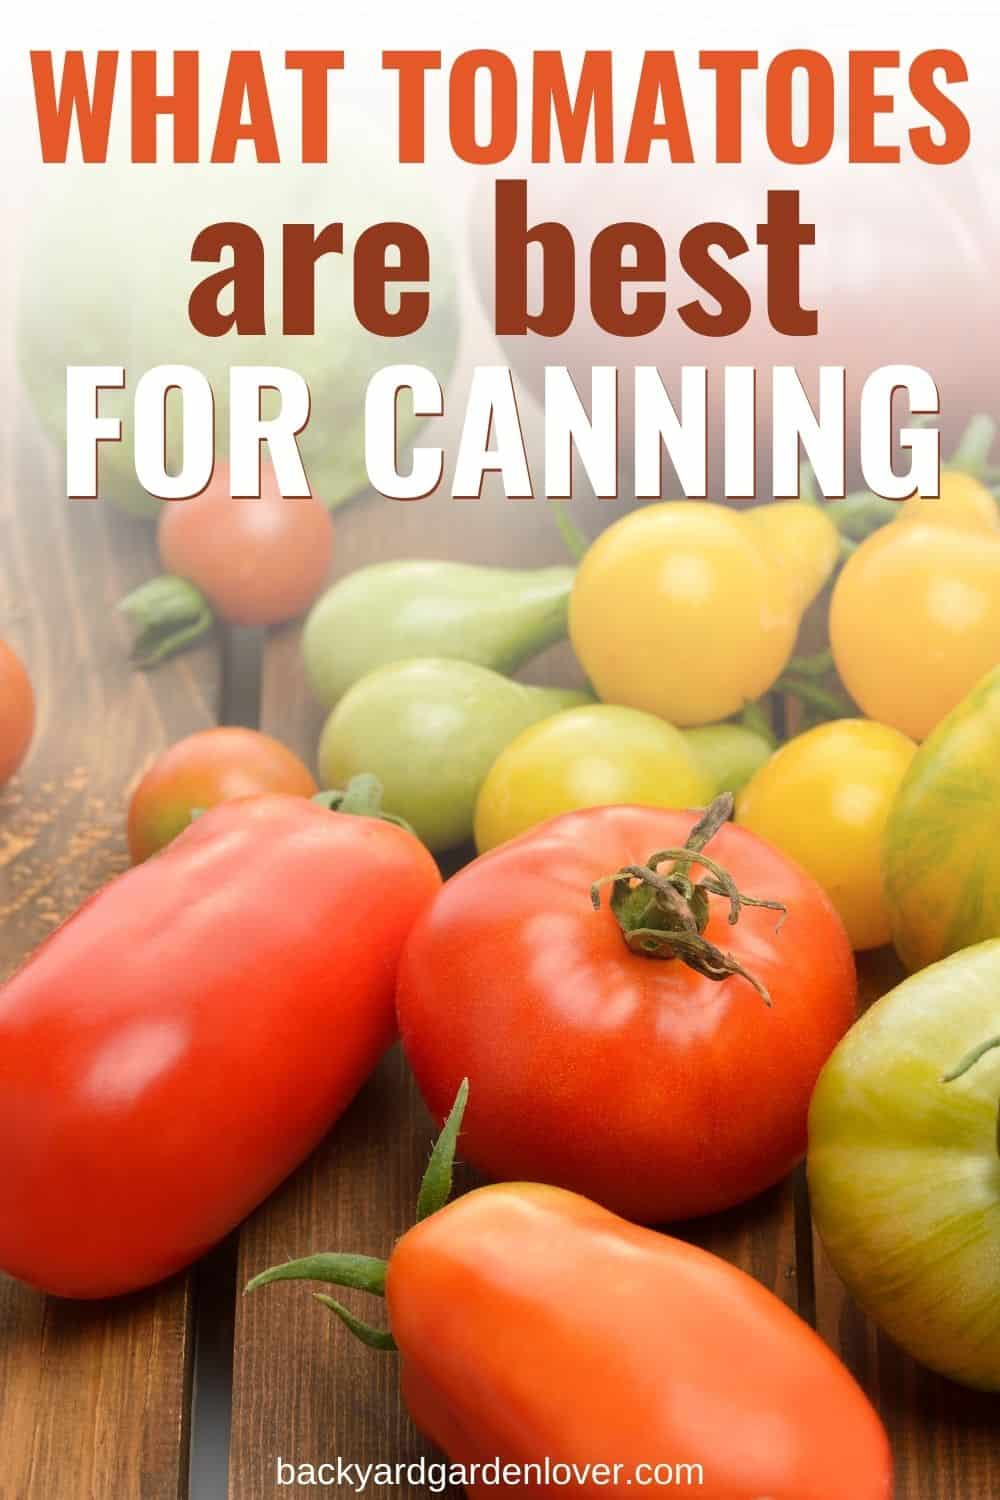 What tomatoes are best for canning - Pinterest image